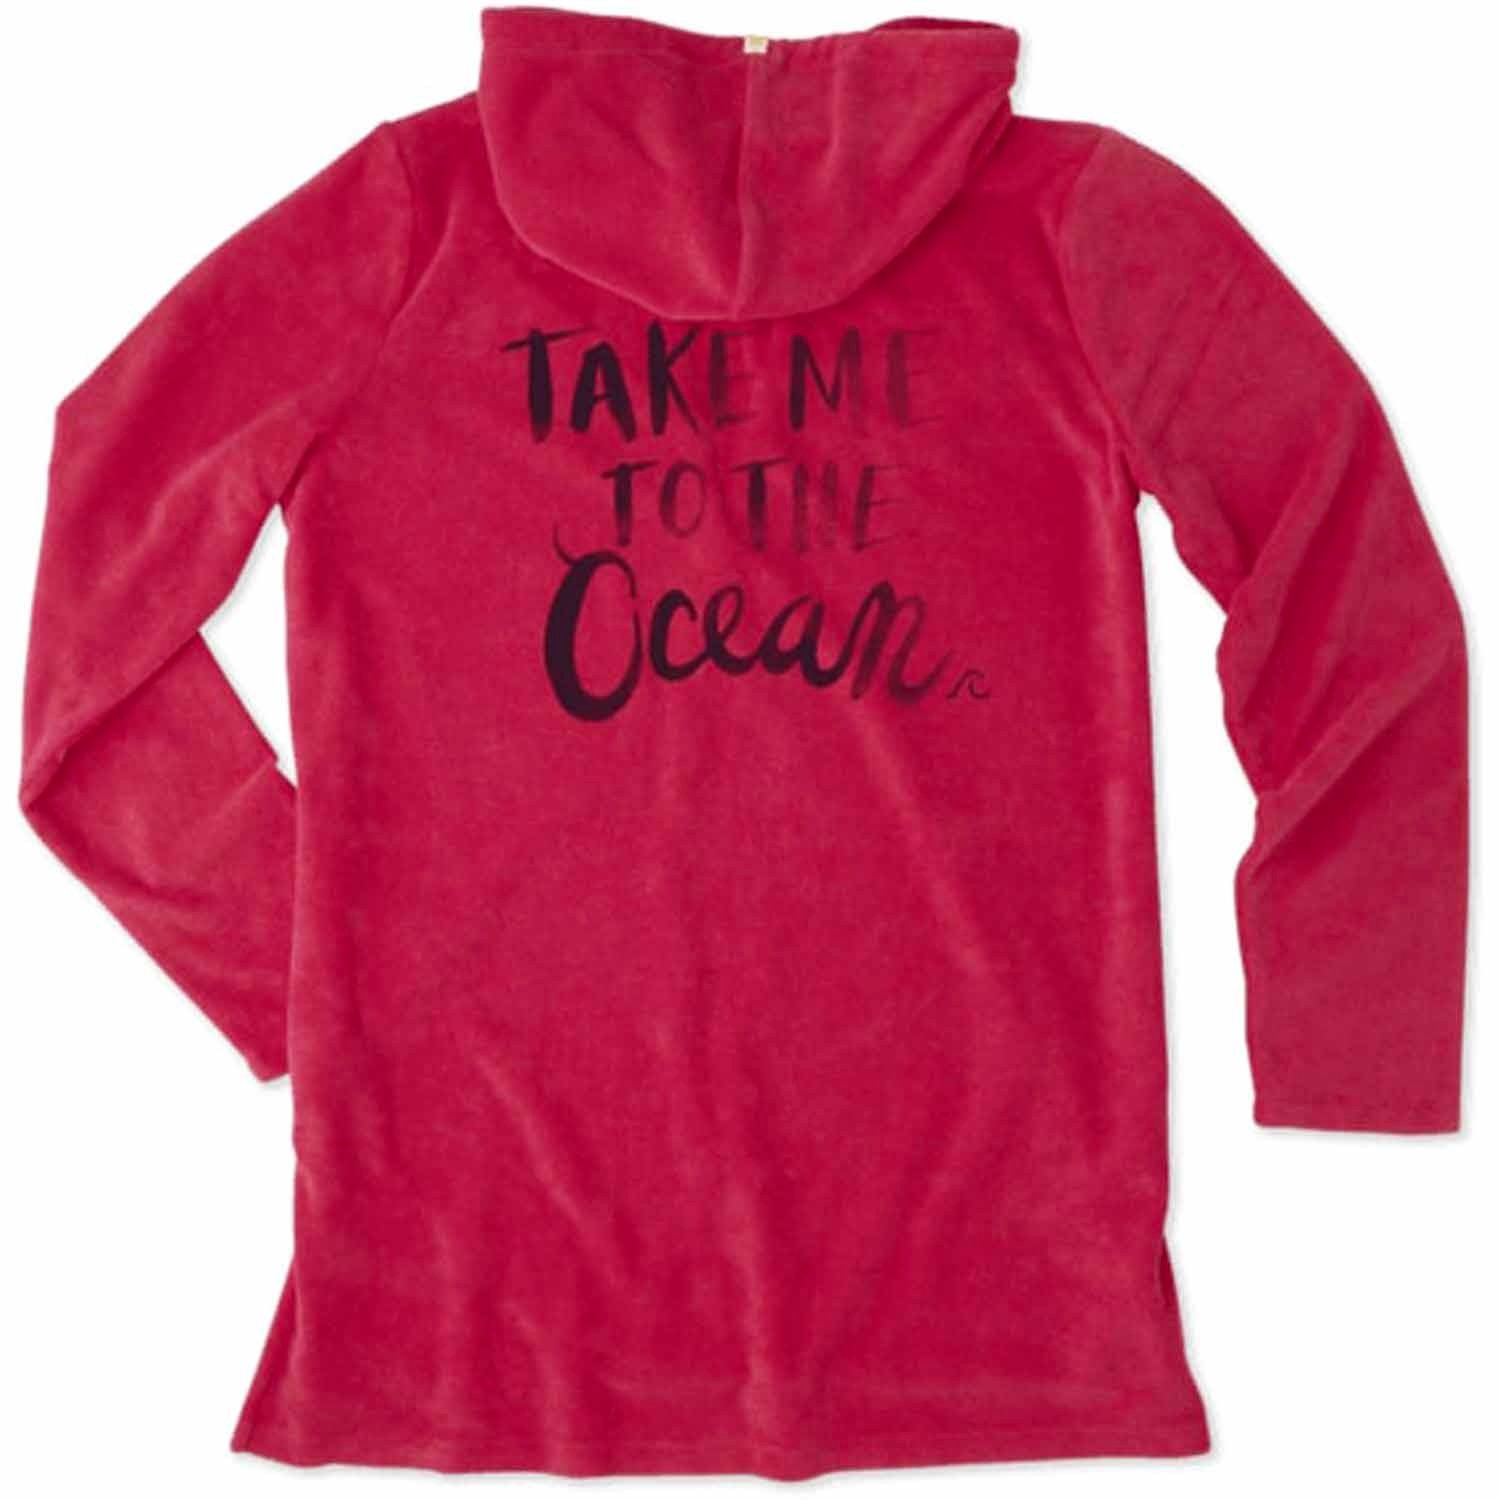 Life is Good. Women's Terry Beach Cover Up: Take Me Ocean...